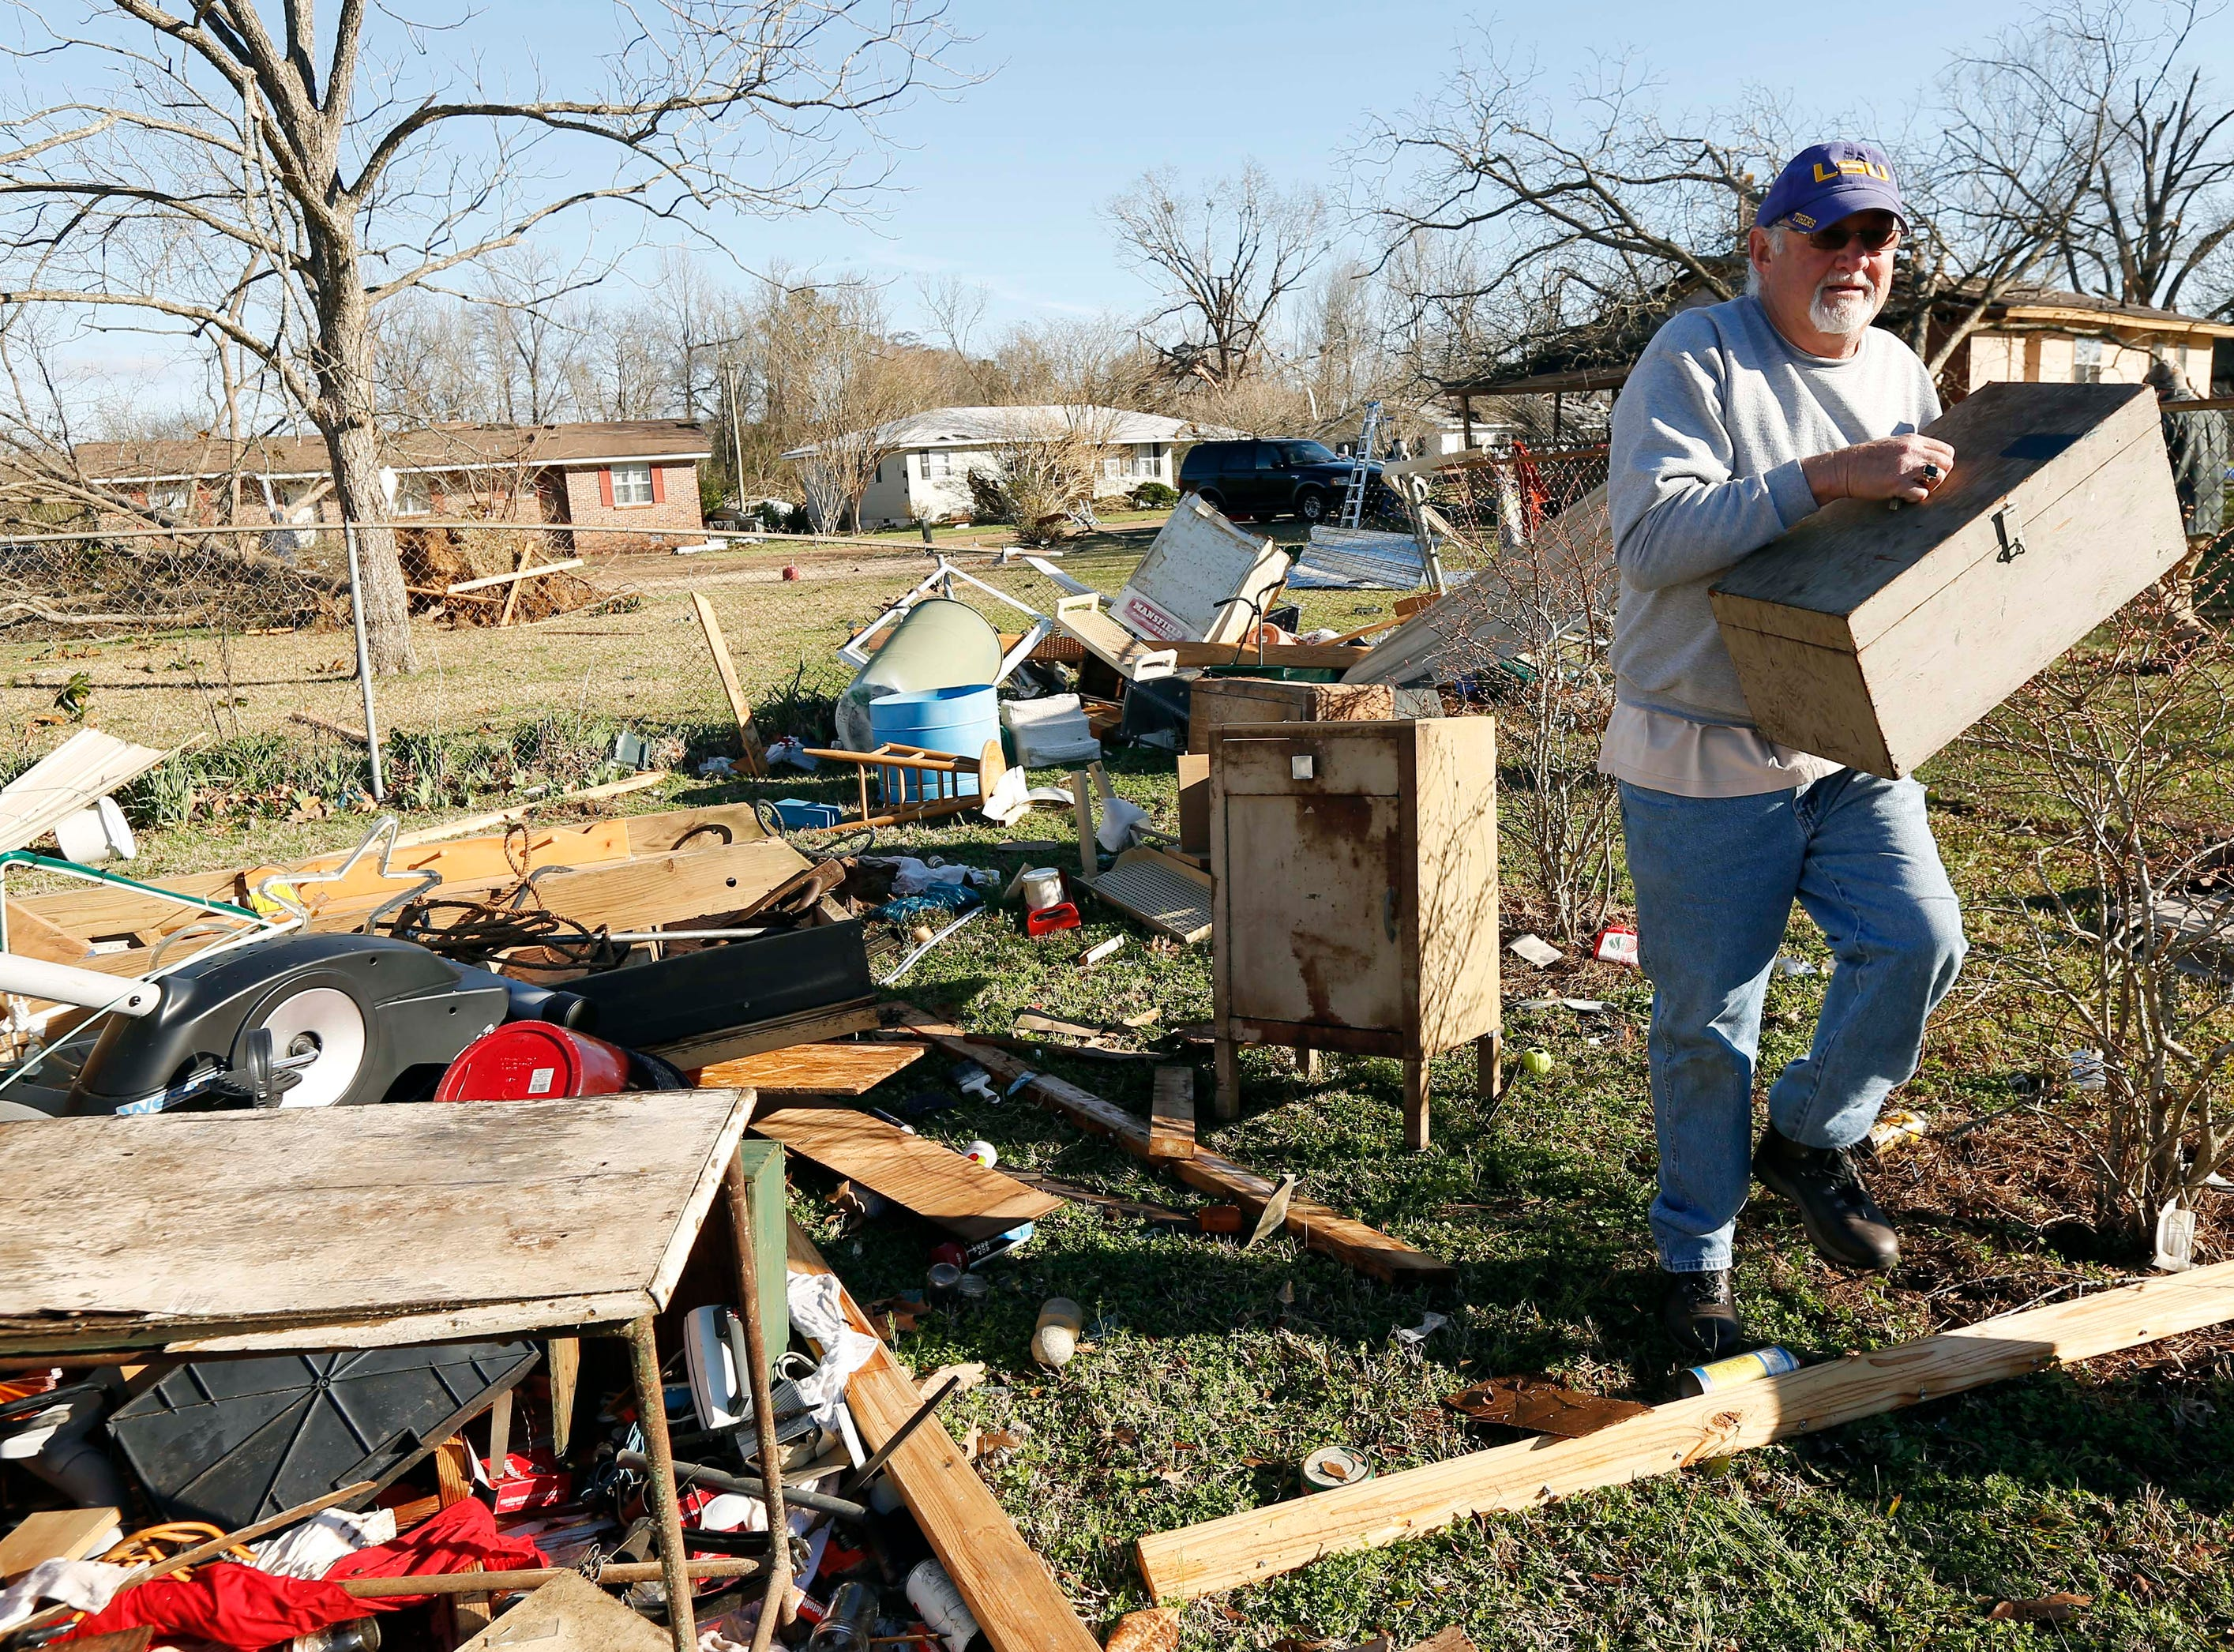 Al Bordelon salvages a tool box from what remains of his mother-in-law's shed in Columbus, Miss., Sunday morning, Feb. 24, 2019, after Saturday's tornado that killed at least one person and shattered businesses and several homes. (AP Photo/Rogelio V. Solis)